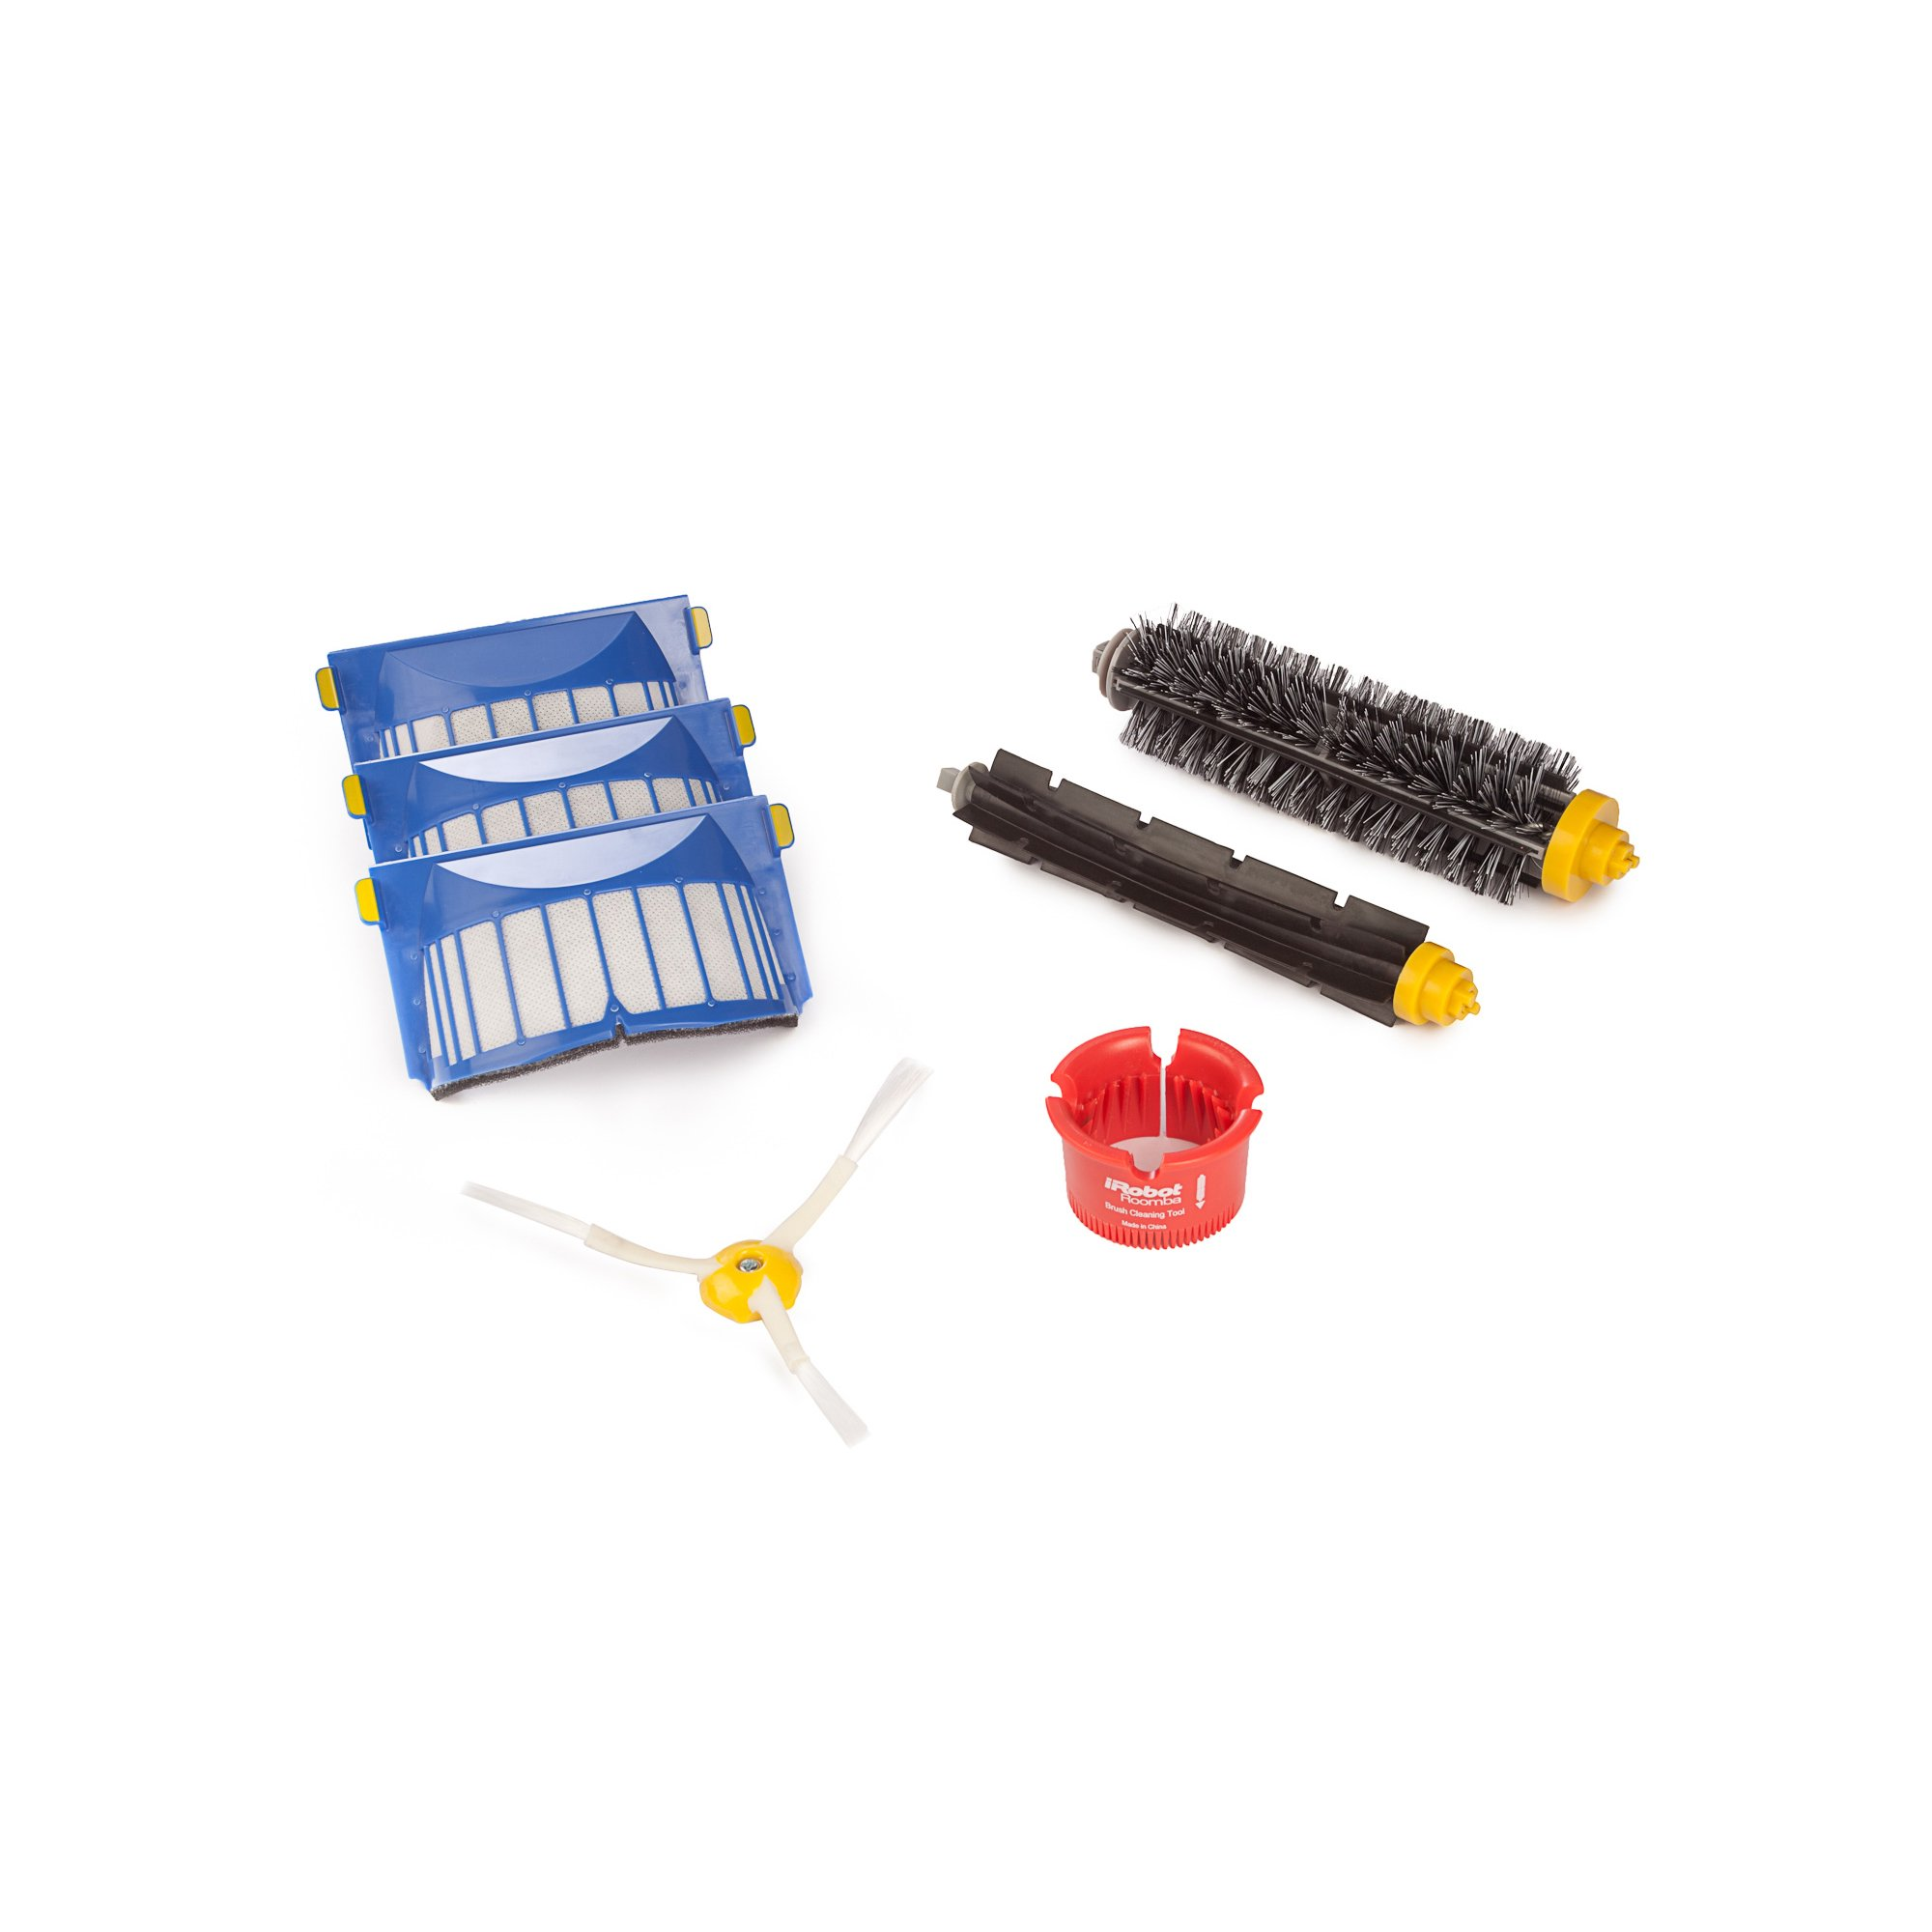 iRobot Roomba 600 Series Replenishment Kit (Brushes & Filters)